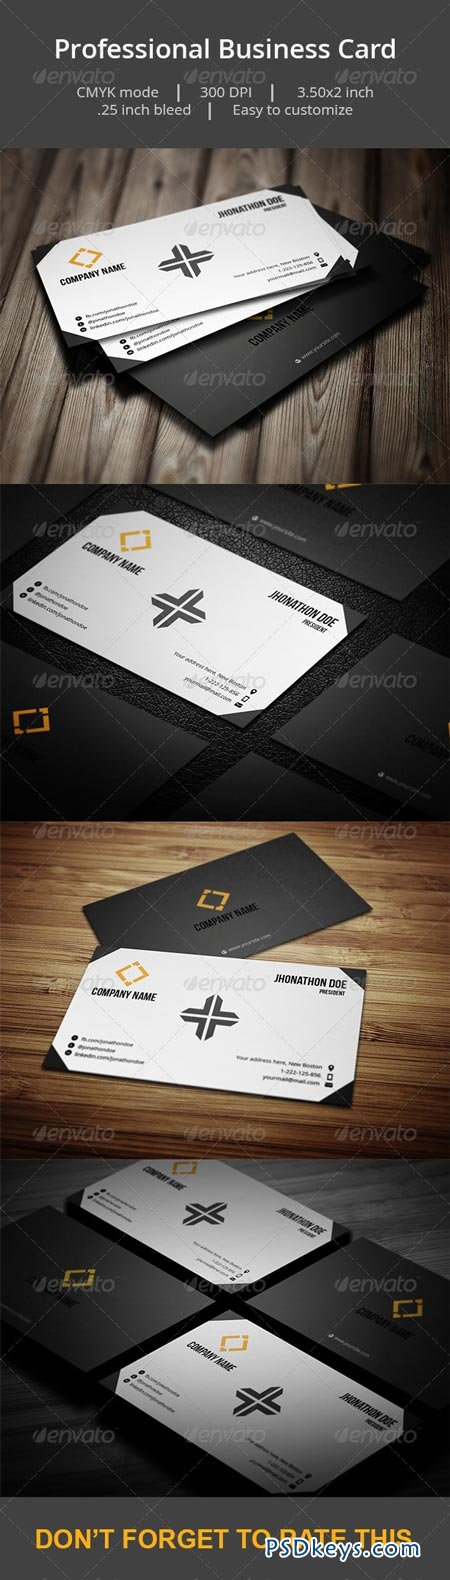 Professional Business card 6951771